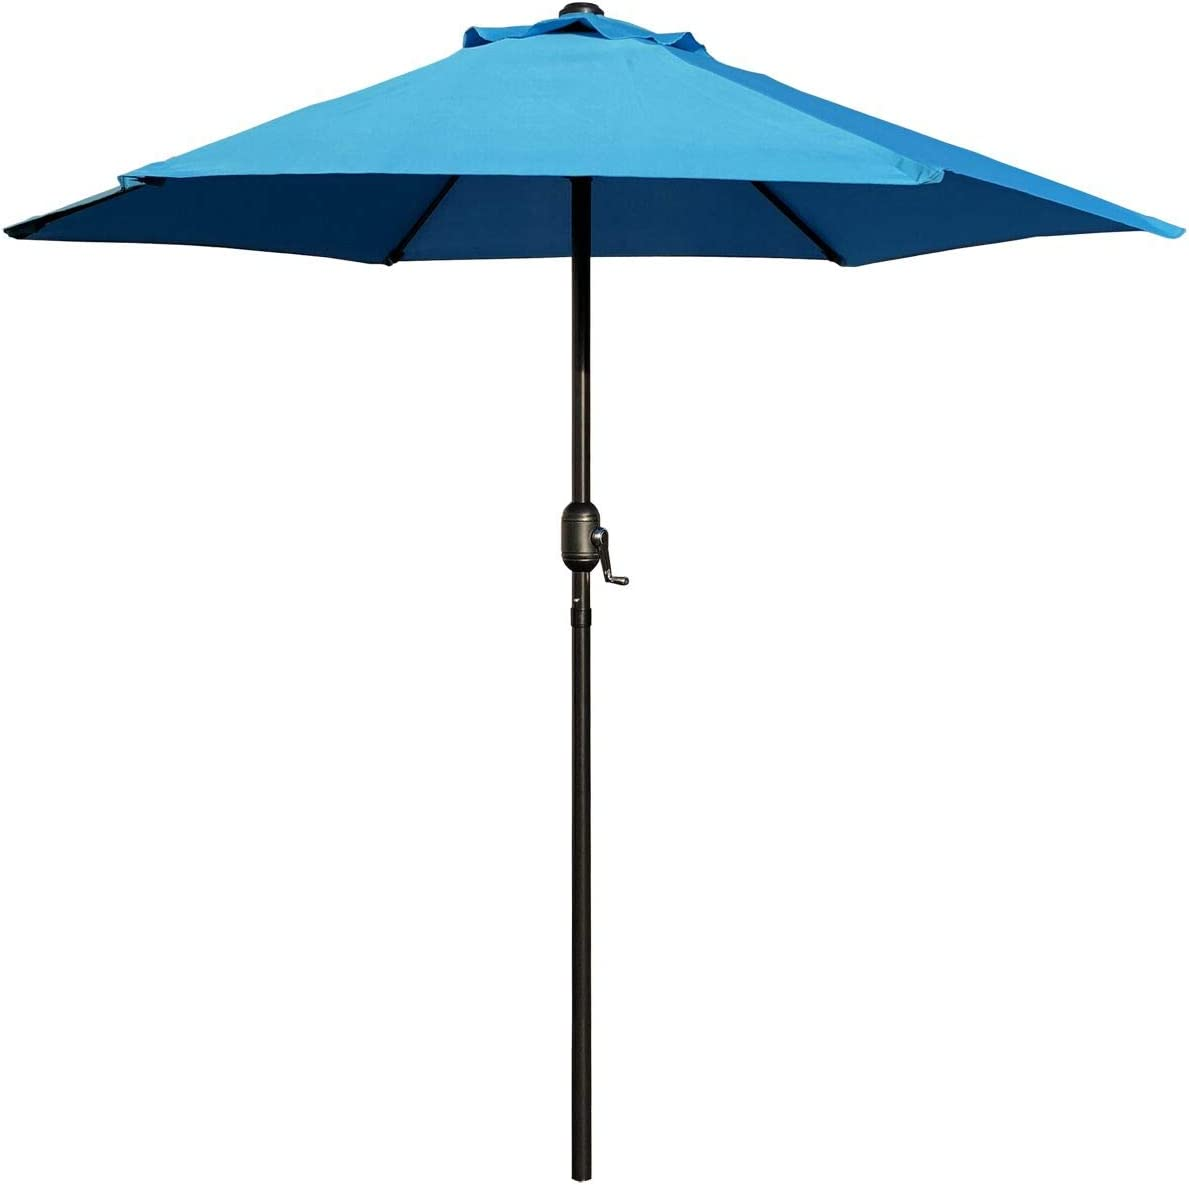 ABBLE Outdoor Patio Umbrella 7.5 Ft with Crank, Weather Resistant, UV Protective Umbrella, Durable, 6 Sturdy Steel Ribs, Market Outdoor Table Umbrella, Aqua